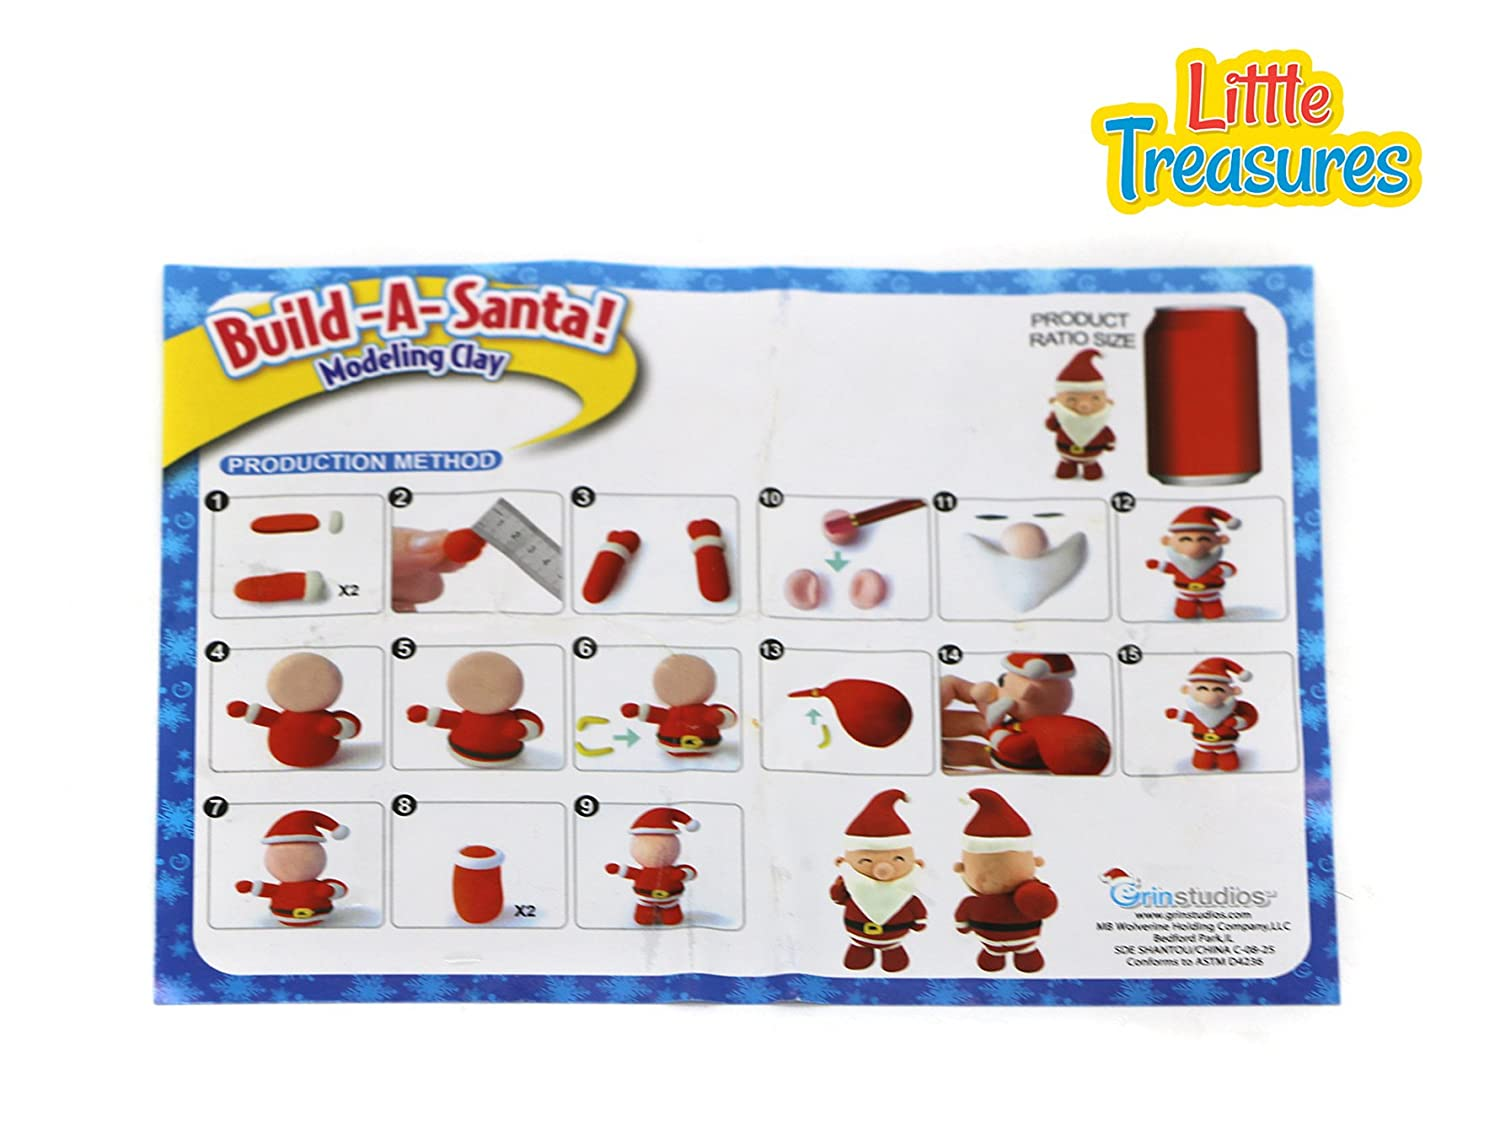 Fun Arts /& Craft Kid/'s Artist Toy Project Clay Modeling and Sculpting DIY Play-Set Little Treasures Cute Christmas Molding Play-Dough kit Create Your 3D Owen Reindeer